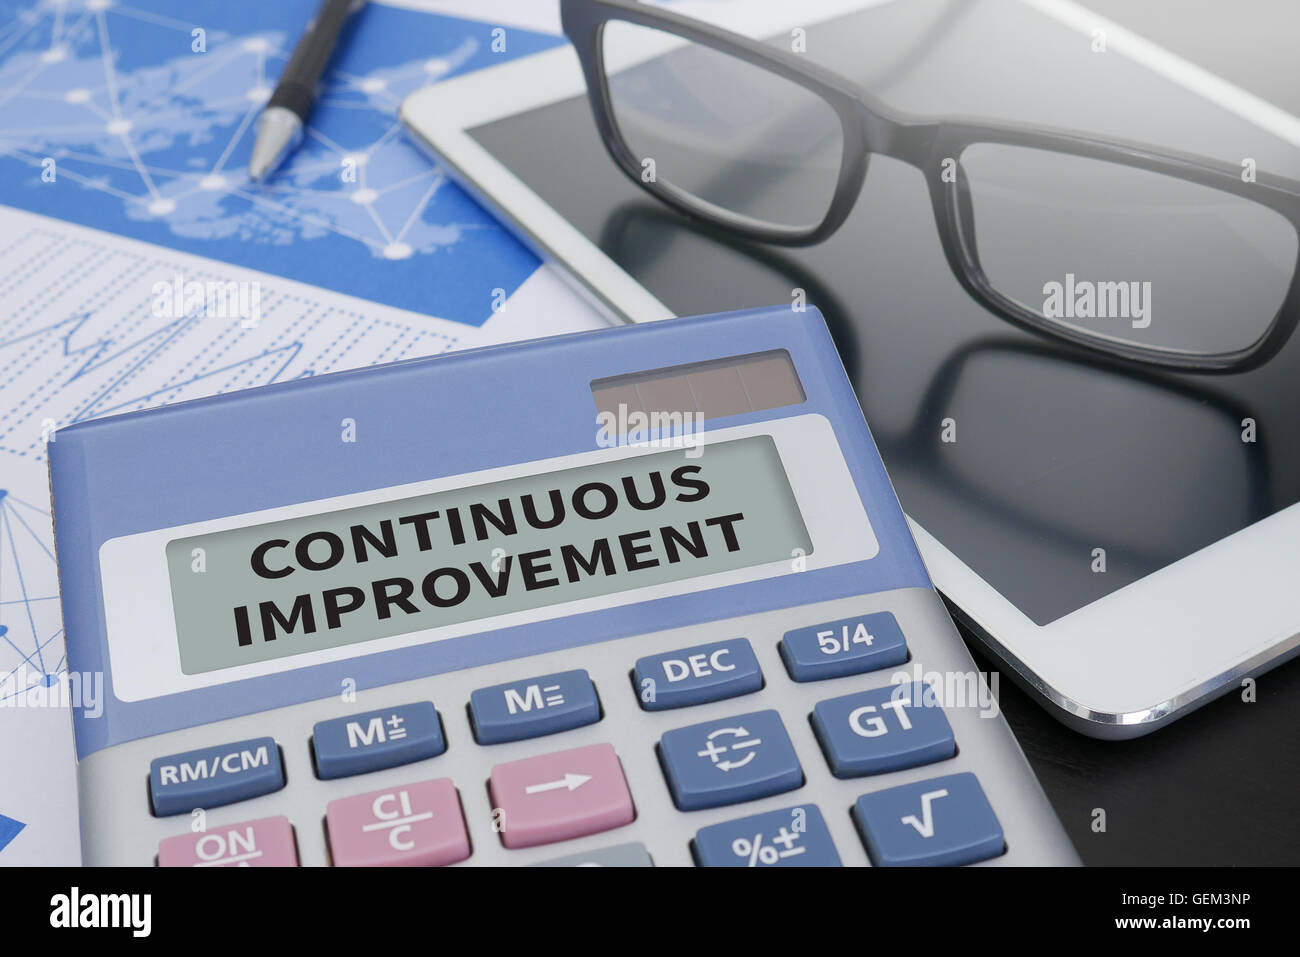 CONTINUOUS IMPROVEMENT Calculator  on table with Office Supplies. ipad - Stock Image